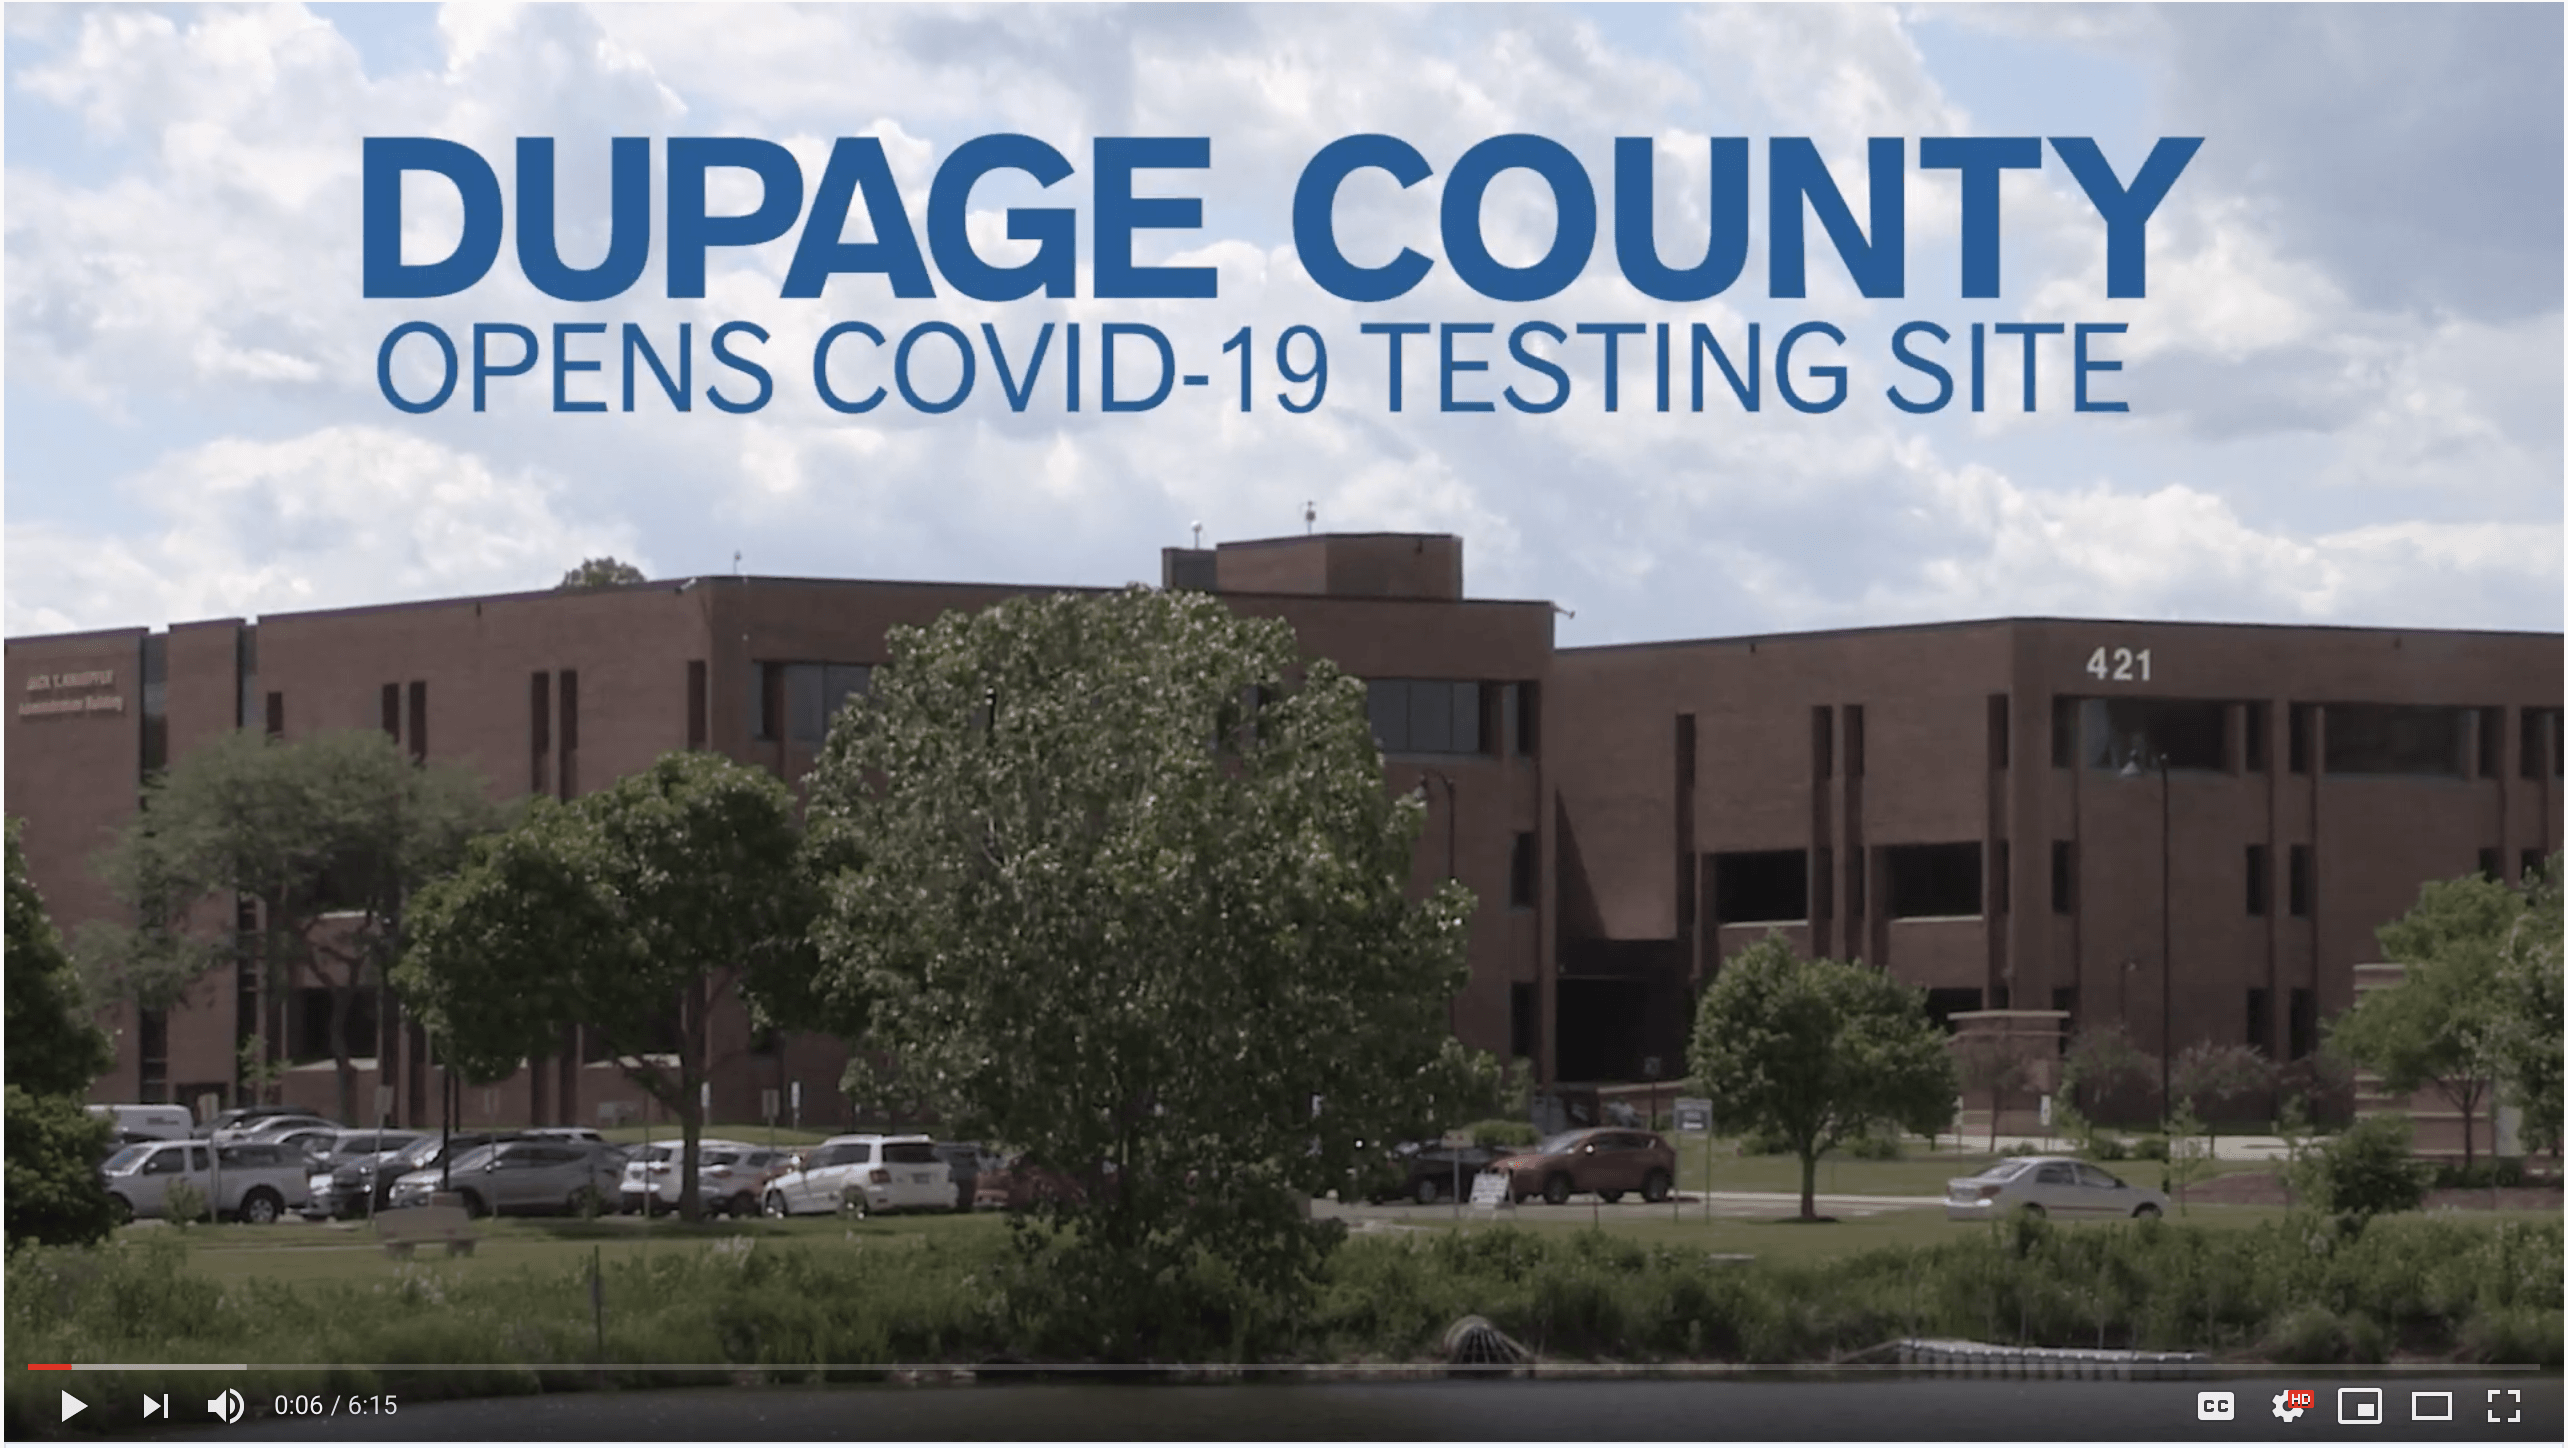 DuPage County Testing Site